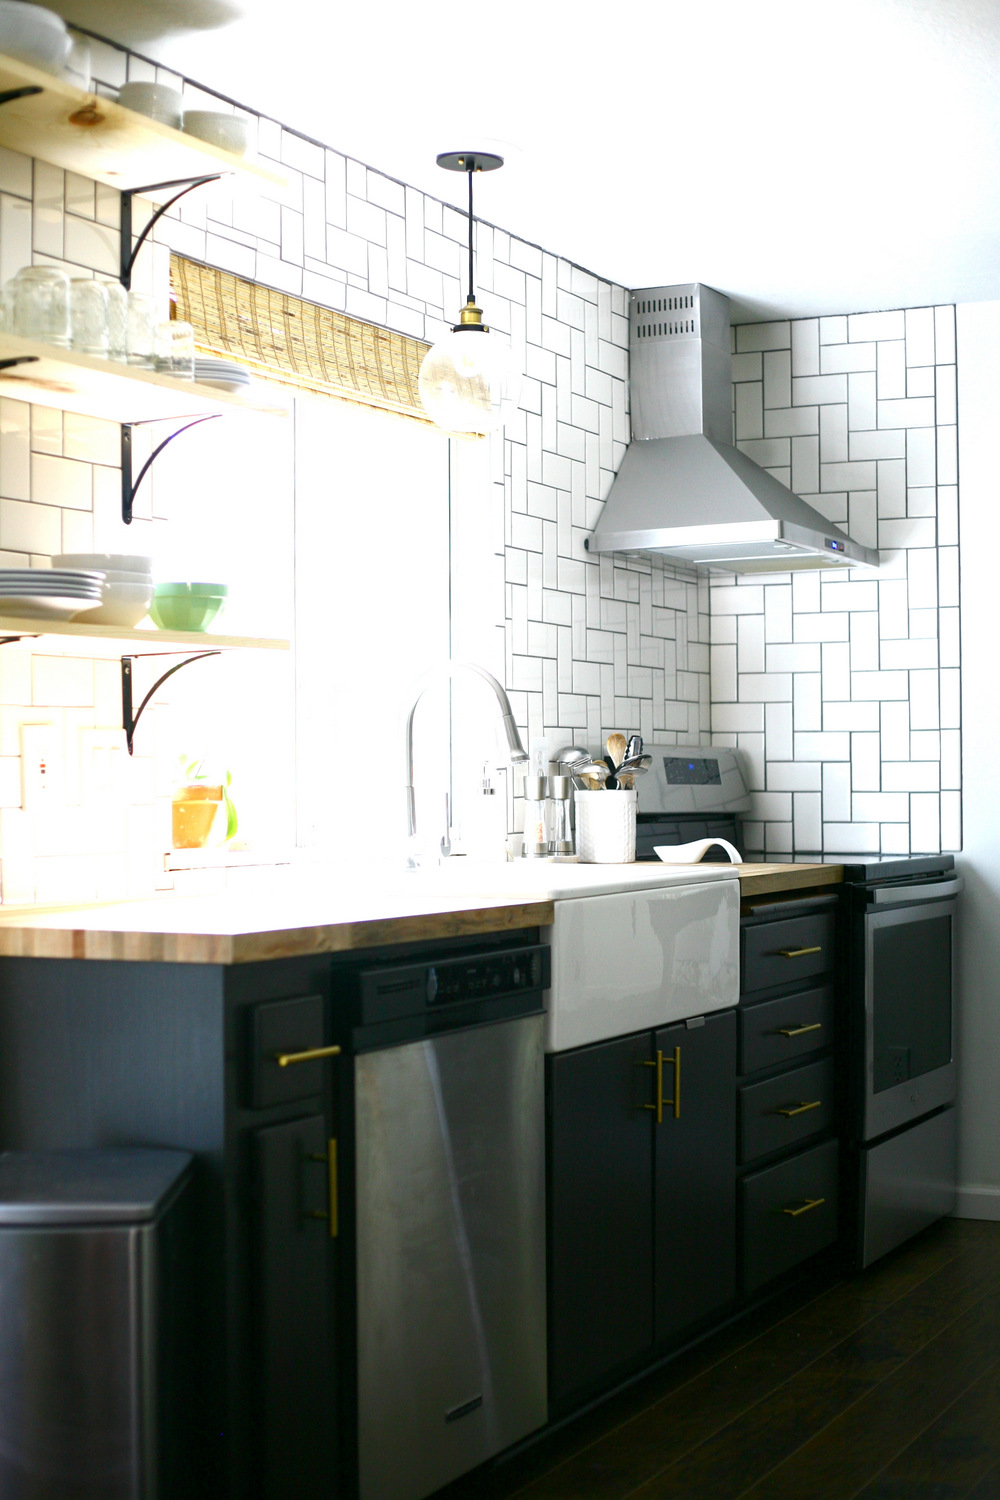 Luxury Ikea Farmhouse Sink Ikea Farm Sink Dimensions With Ikea Why We Didn't Chose The Ikea Domsjo/havsen Sink For Our